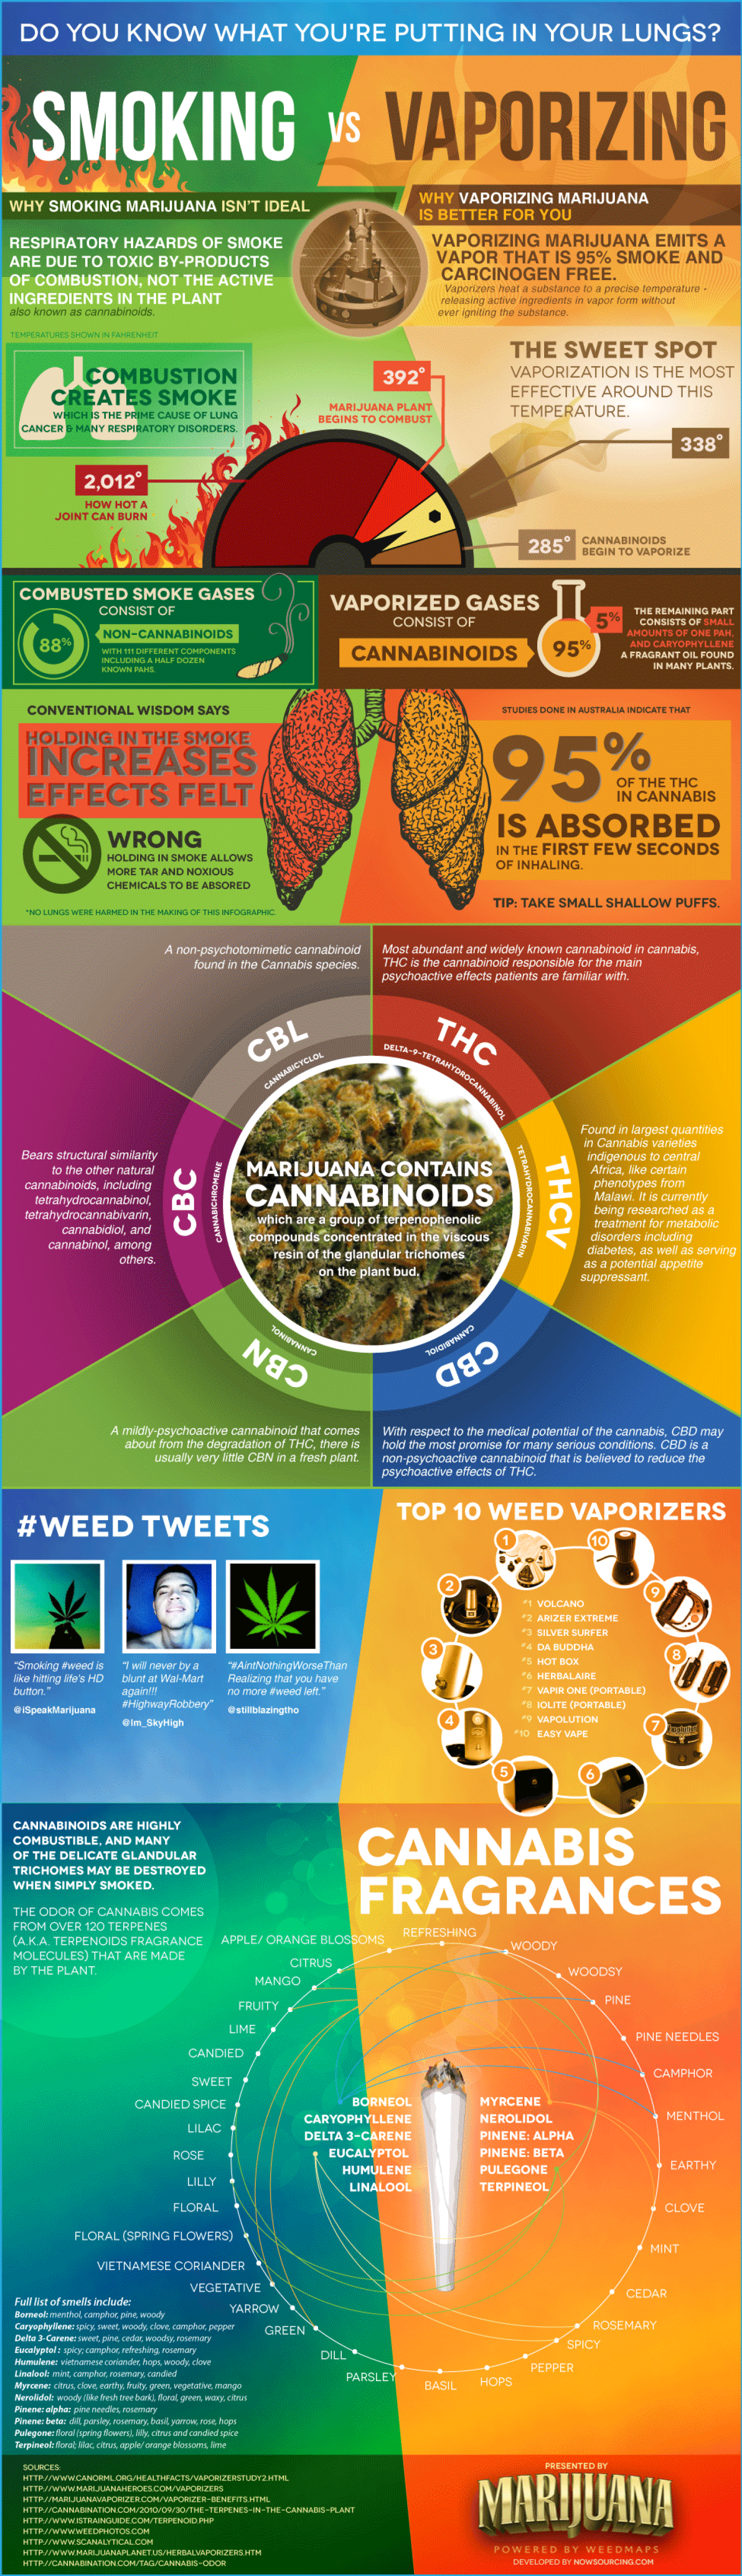 Smoking Vs. Vaporizing...What's the Difference? Infographic